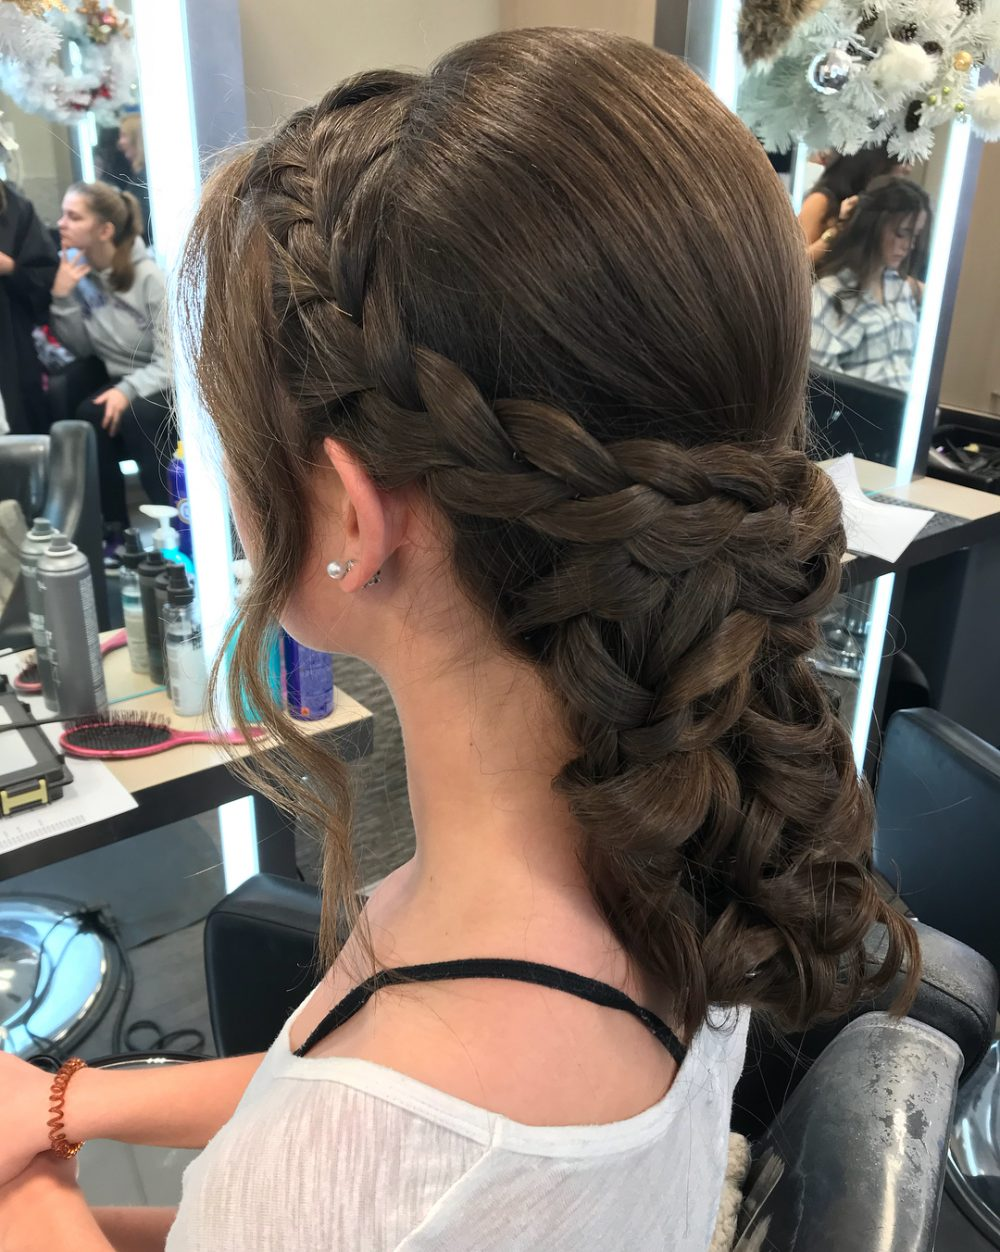 23 Cute Prom Hairstyles Guaranteed to Turn Heads This Year!